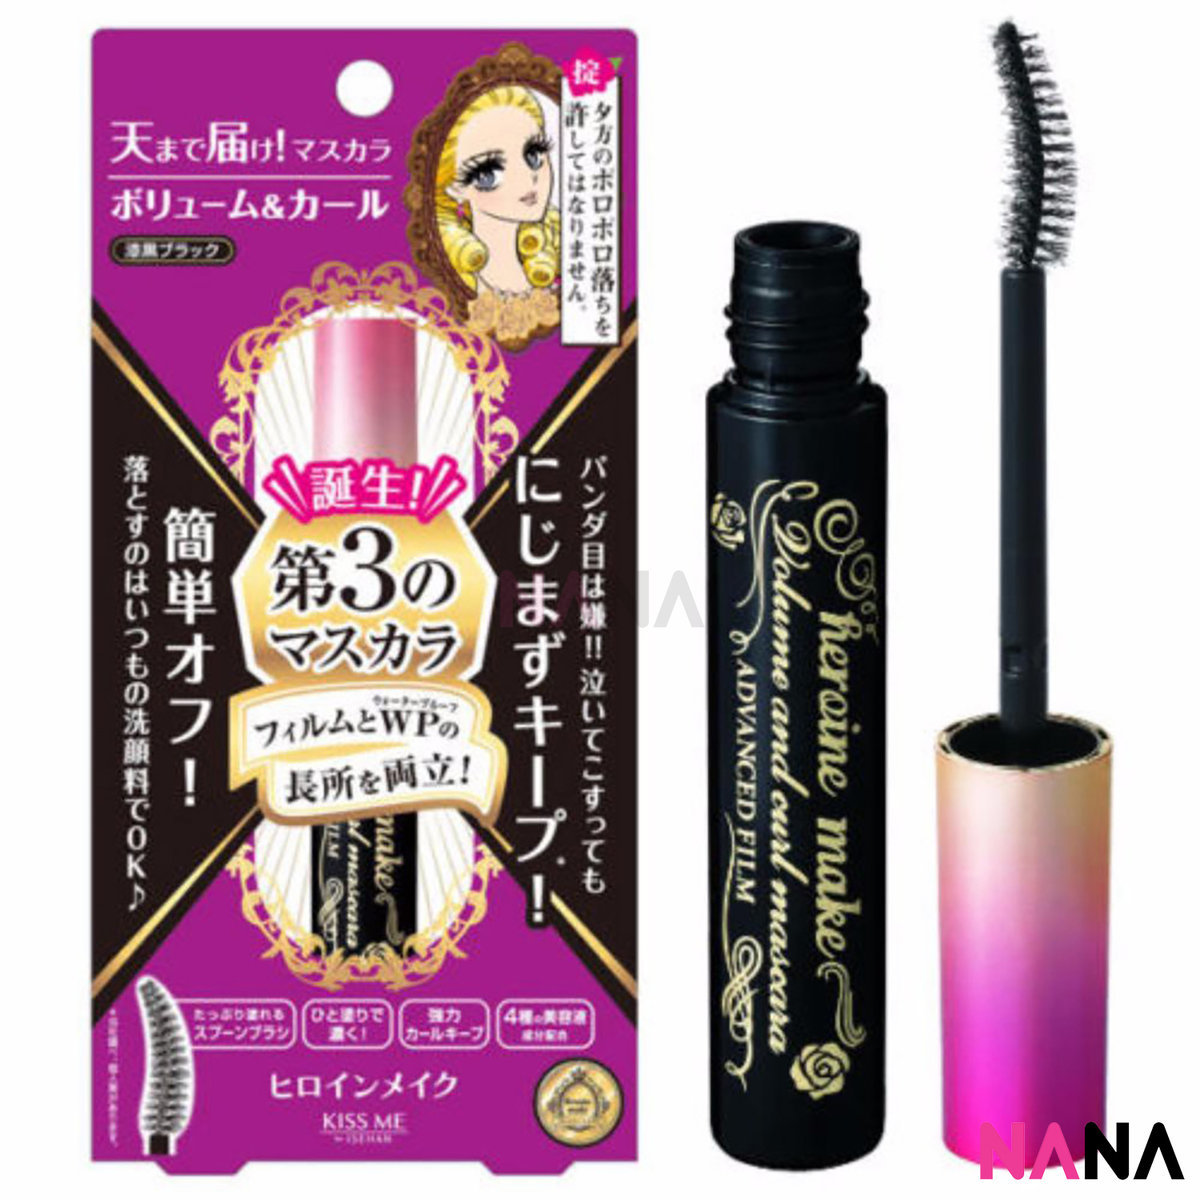 1d6032cc712 Heroine Make Volume & Curl Mascara Advanced Film /6g - Jet Black (Purple  Package